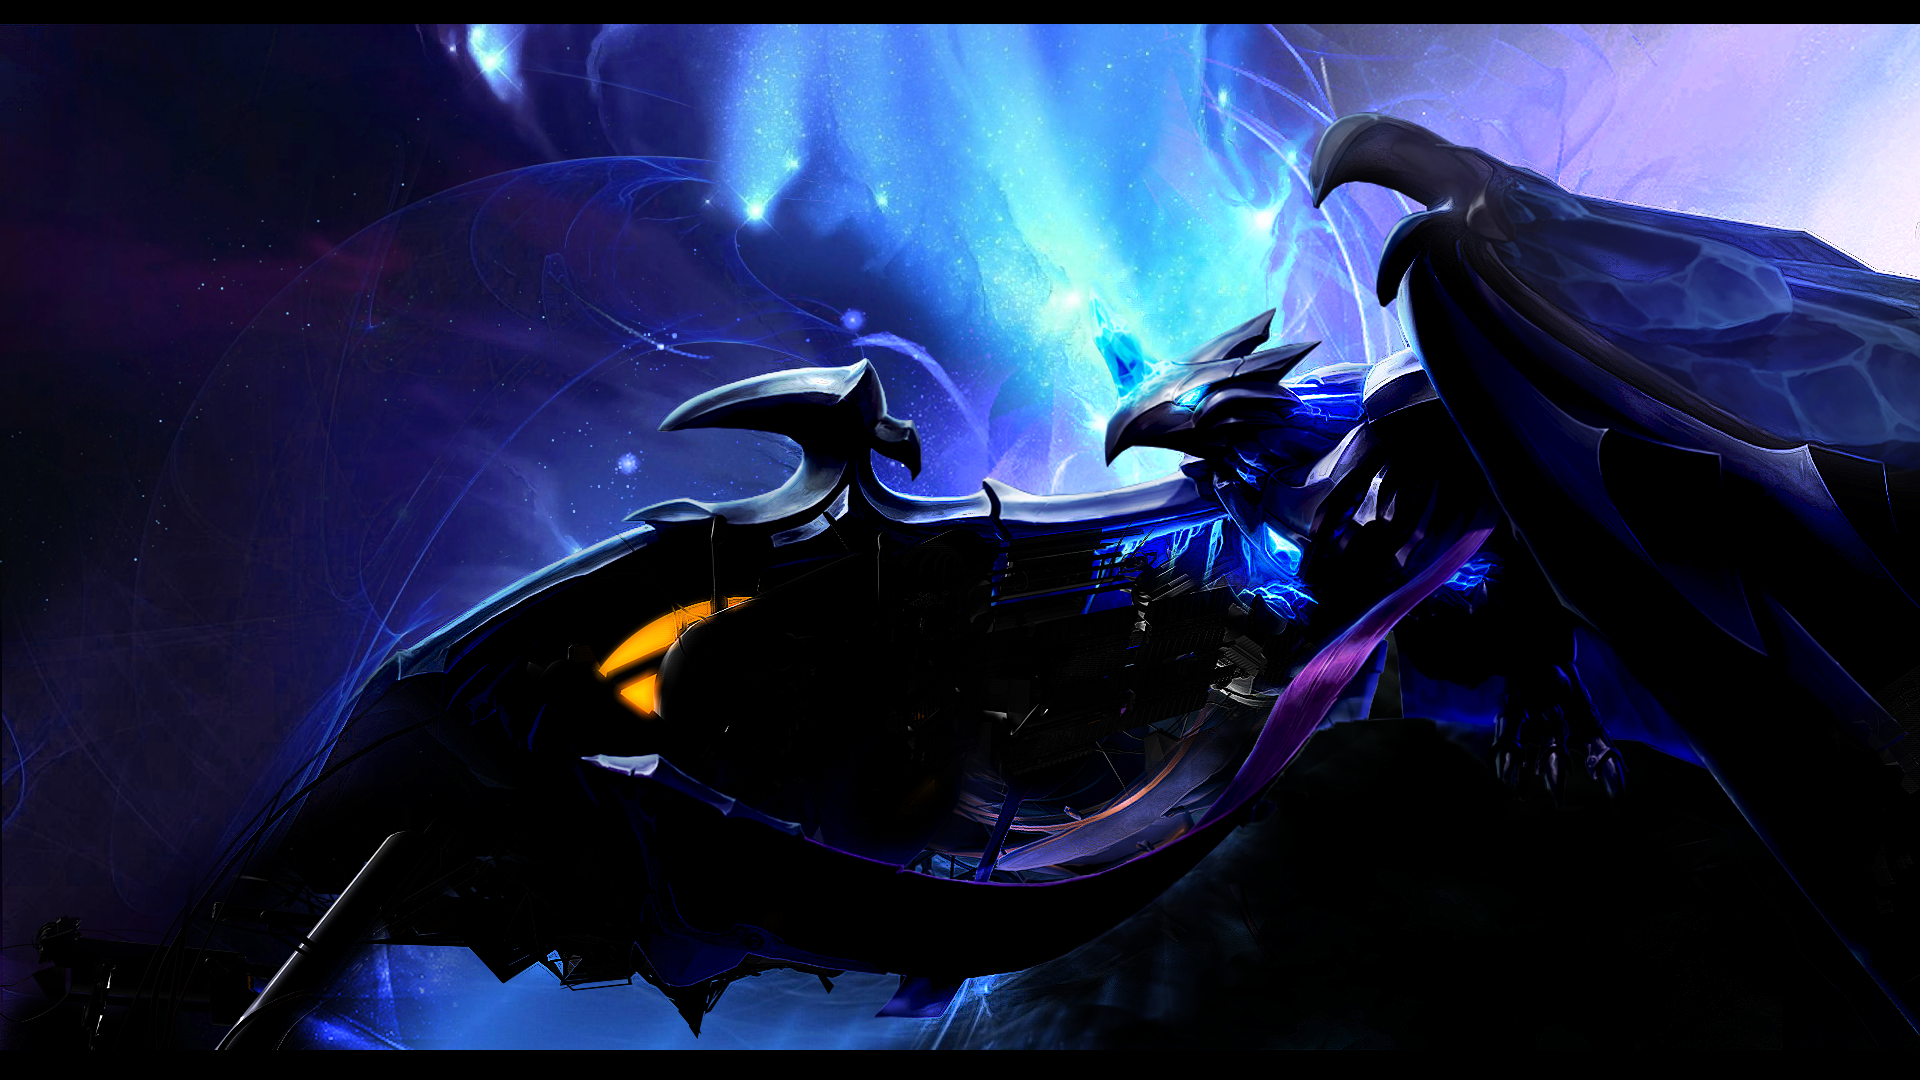 blackfrost anivia ingame - photo #31